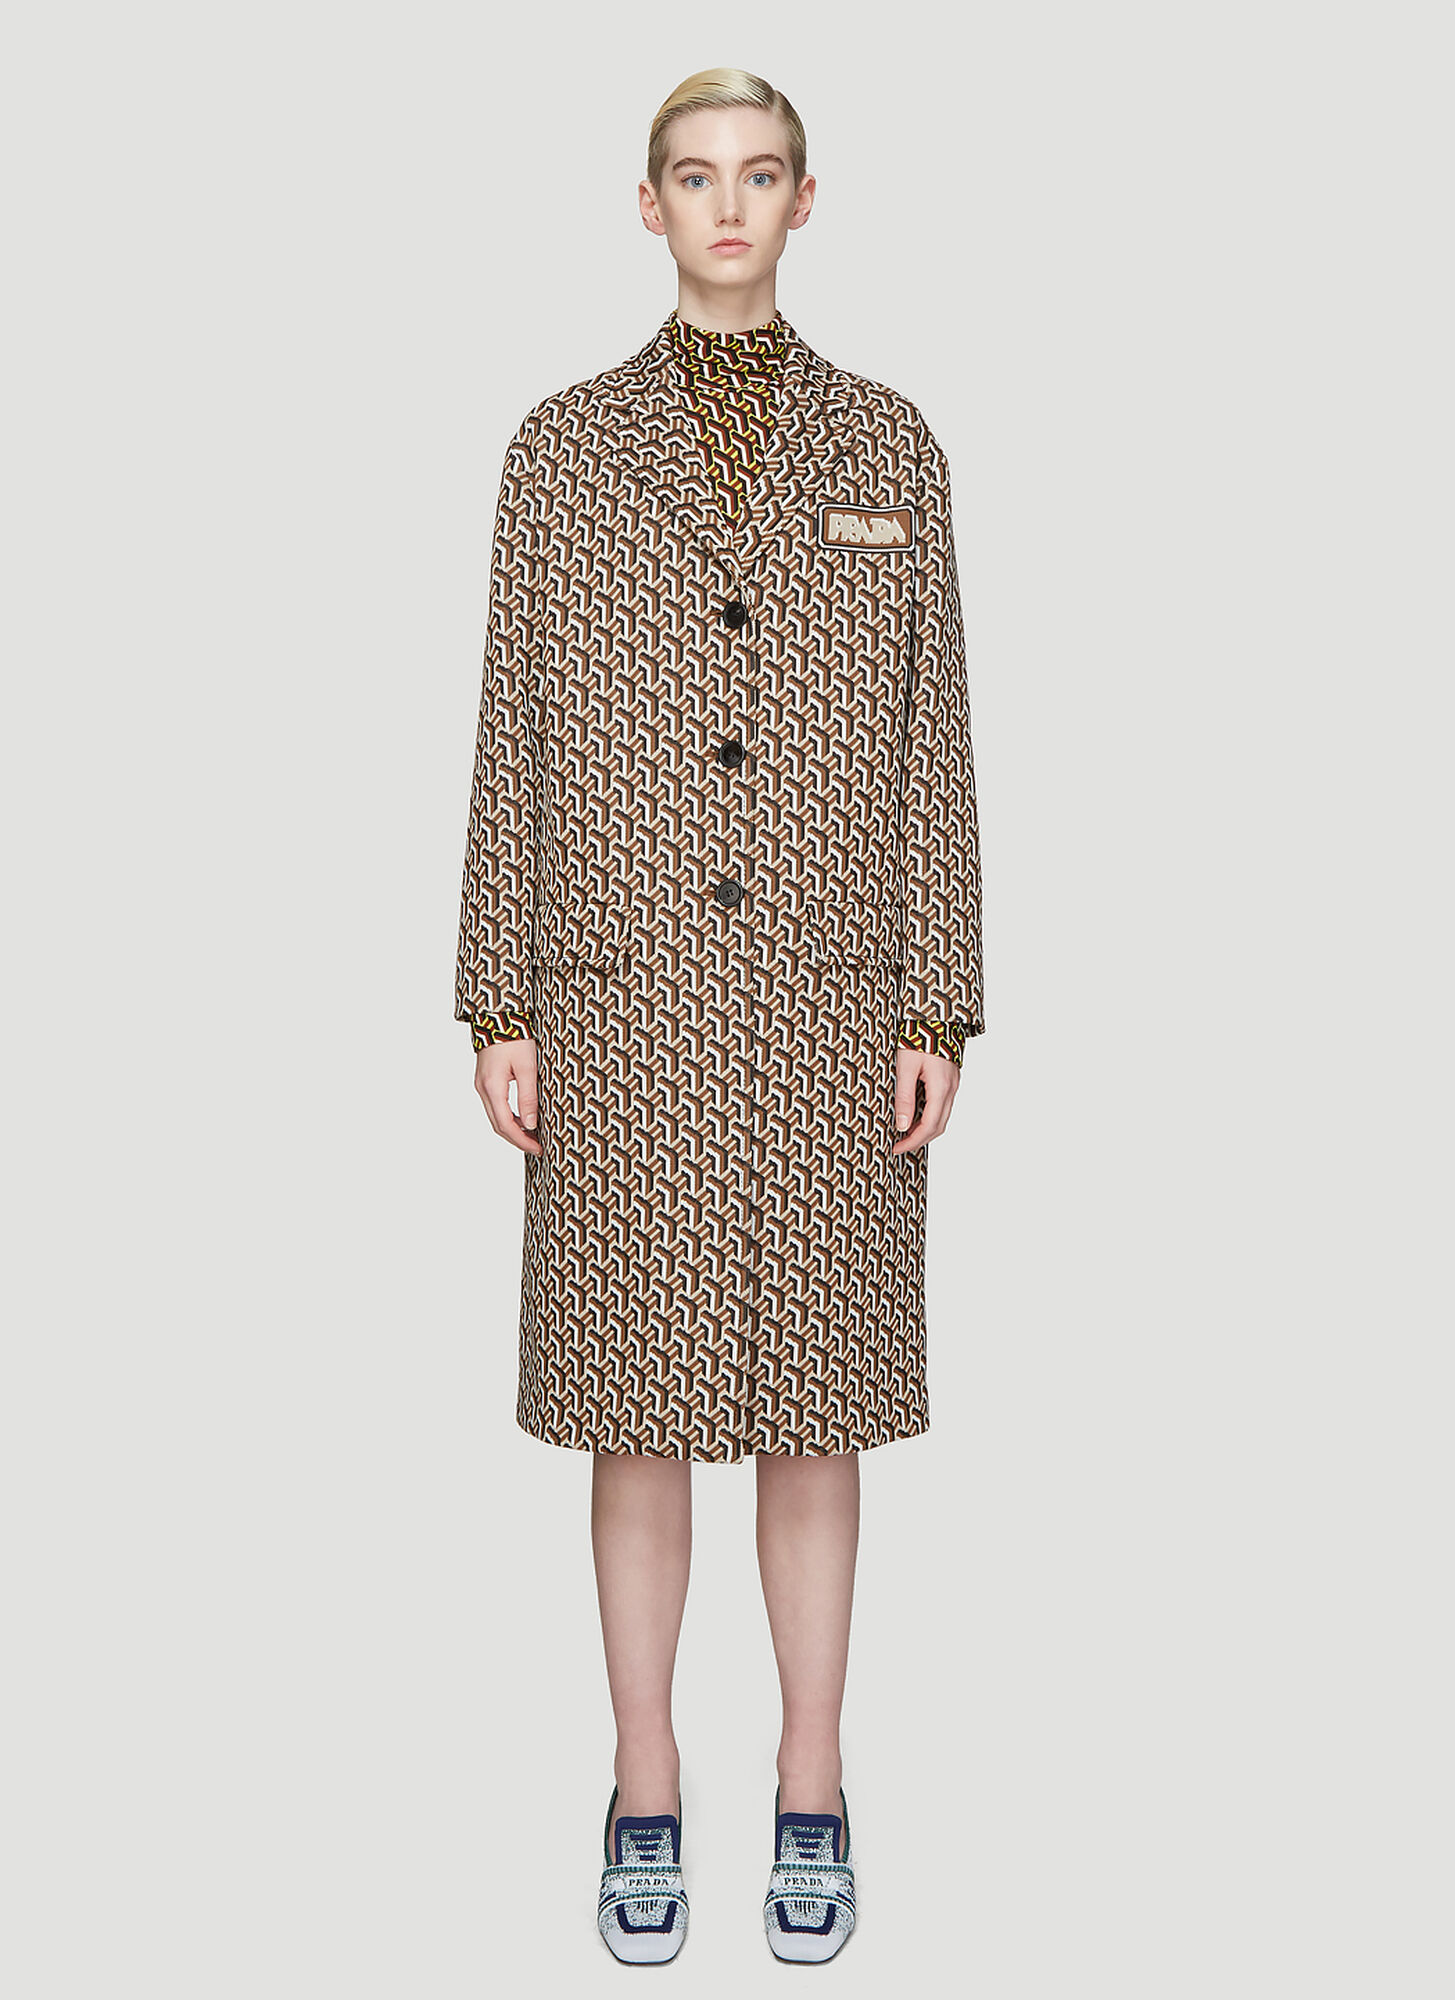 Prada Geometric Twist Print Jacquard Coat in Brown